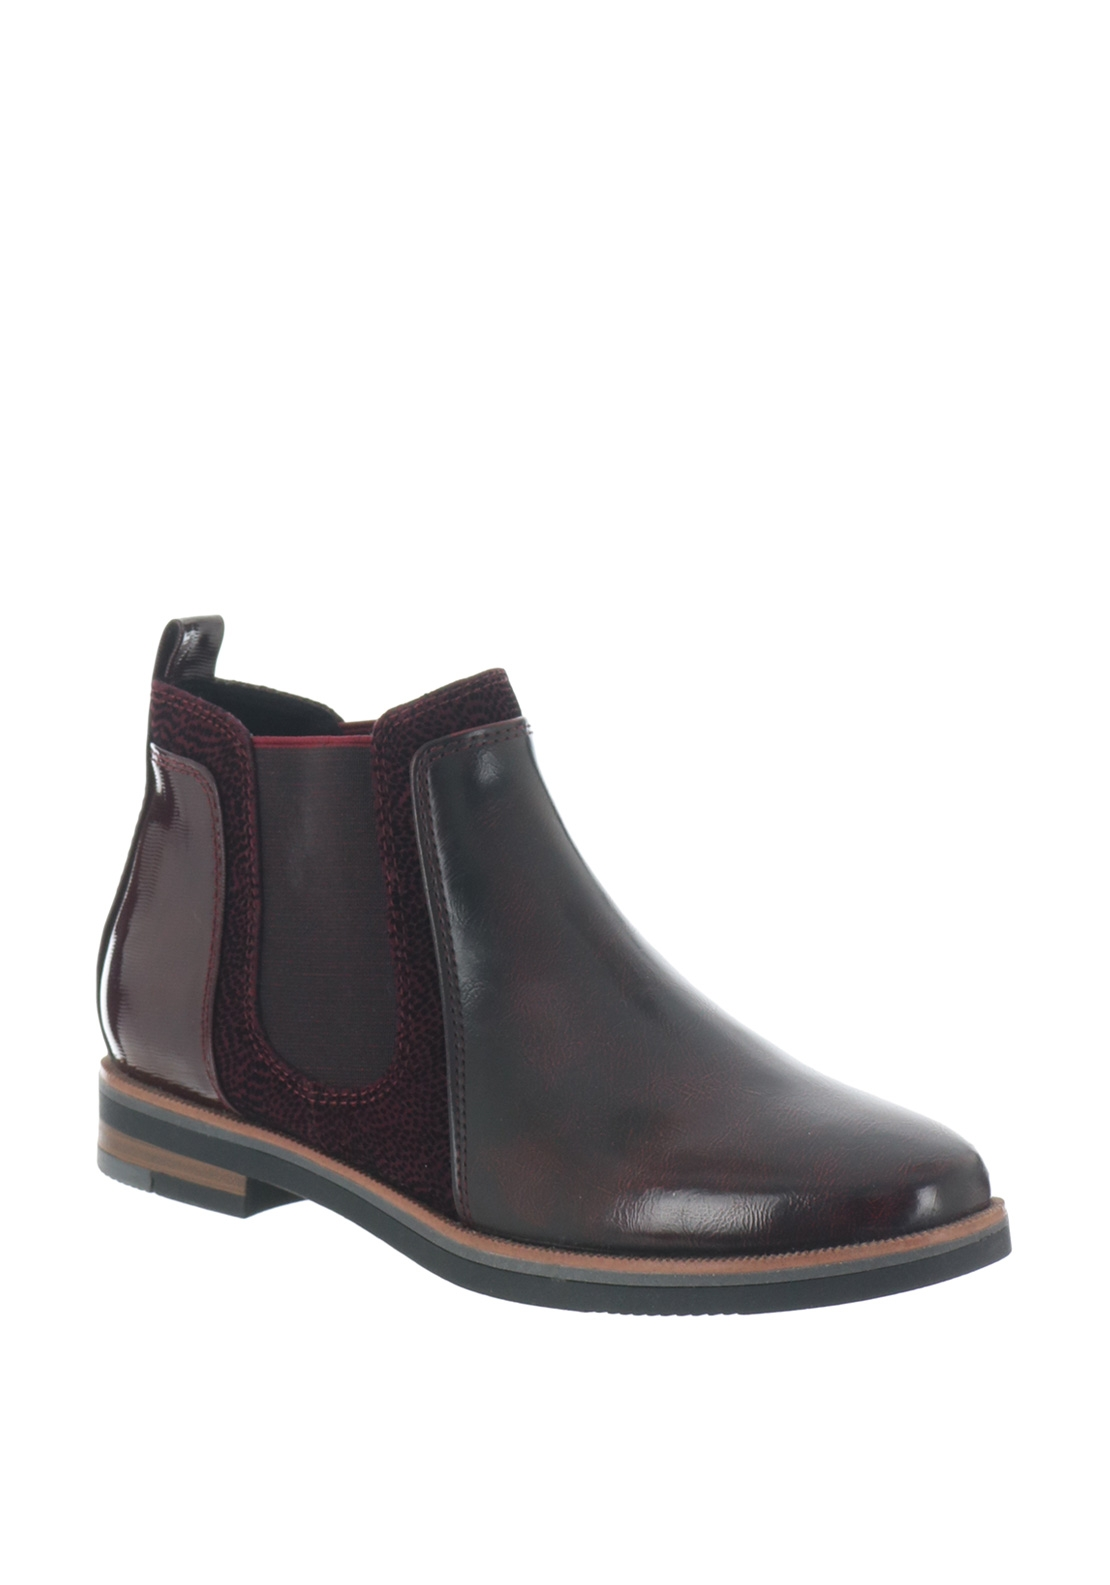 Marco Tozzi Faux Leather Patent Chelsea Boots, Bordeaux